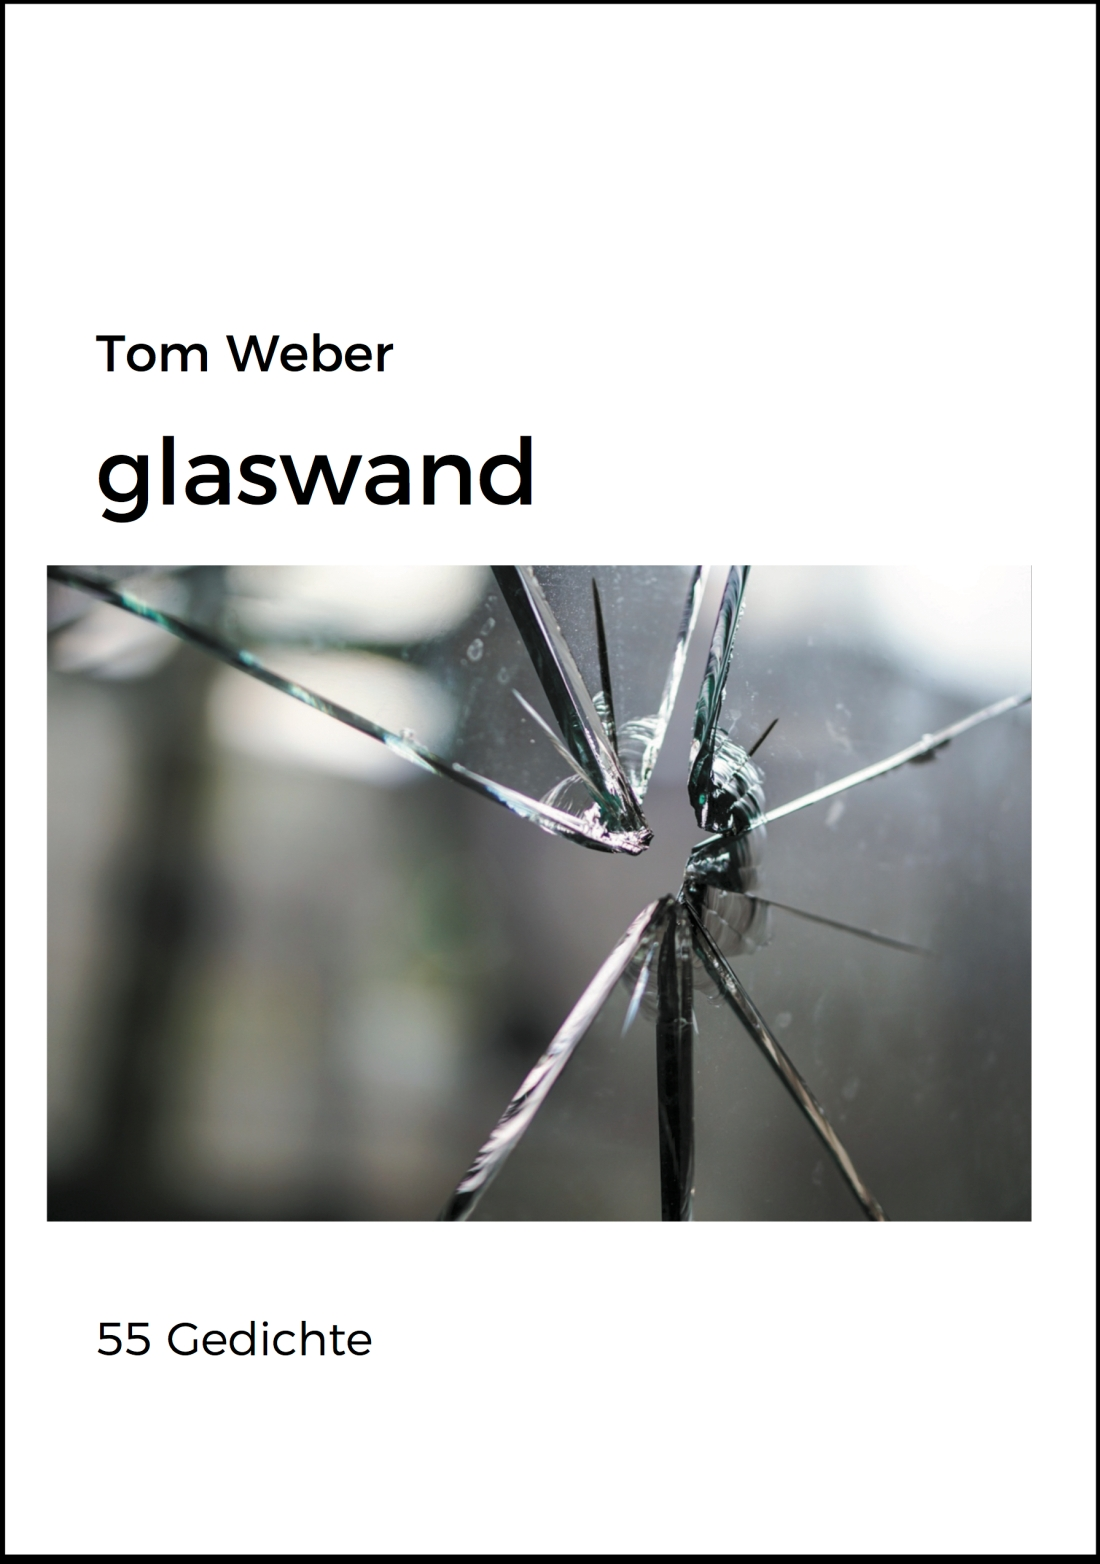 glaswand-cover-front-social-media